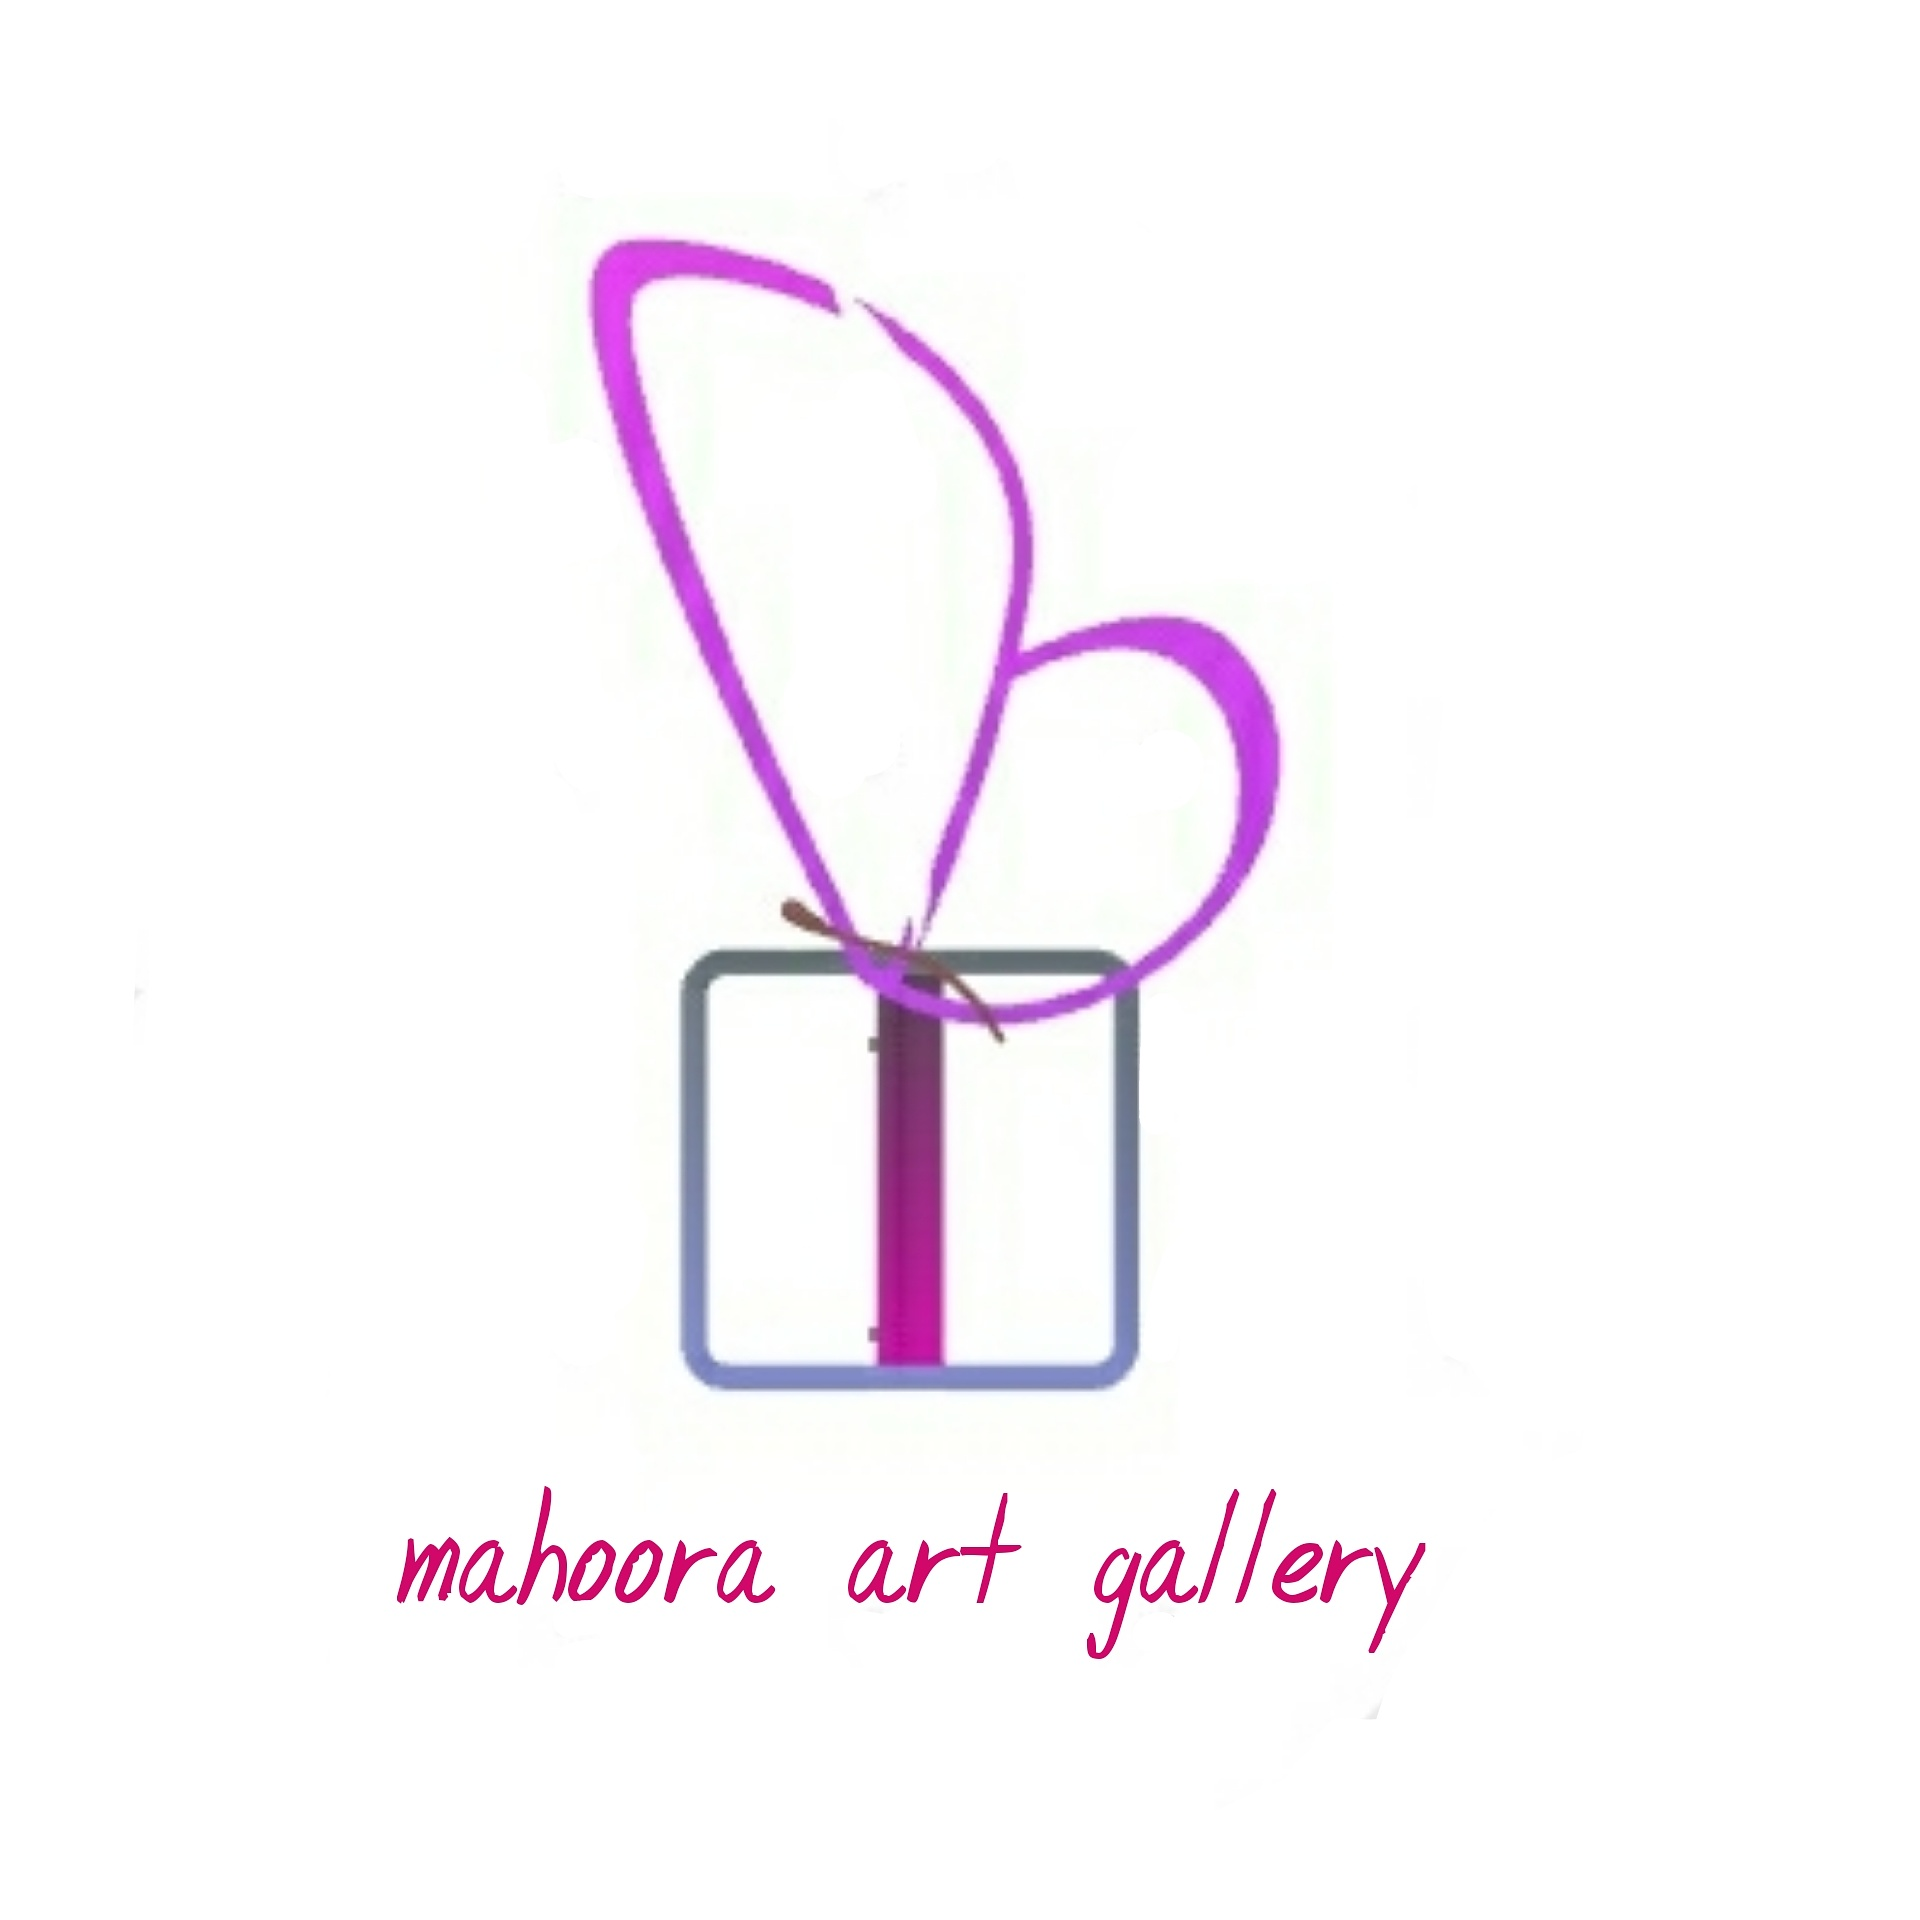 Mahoora art gallery